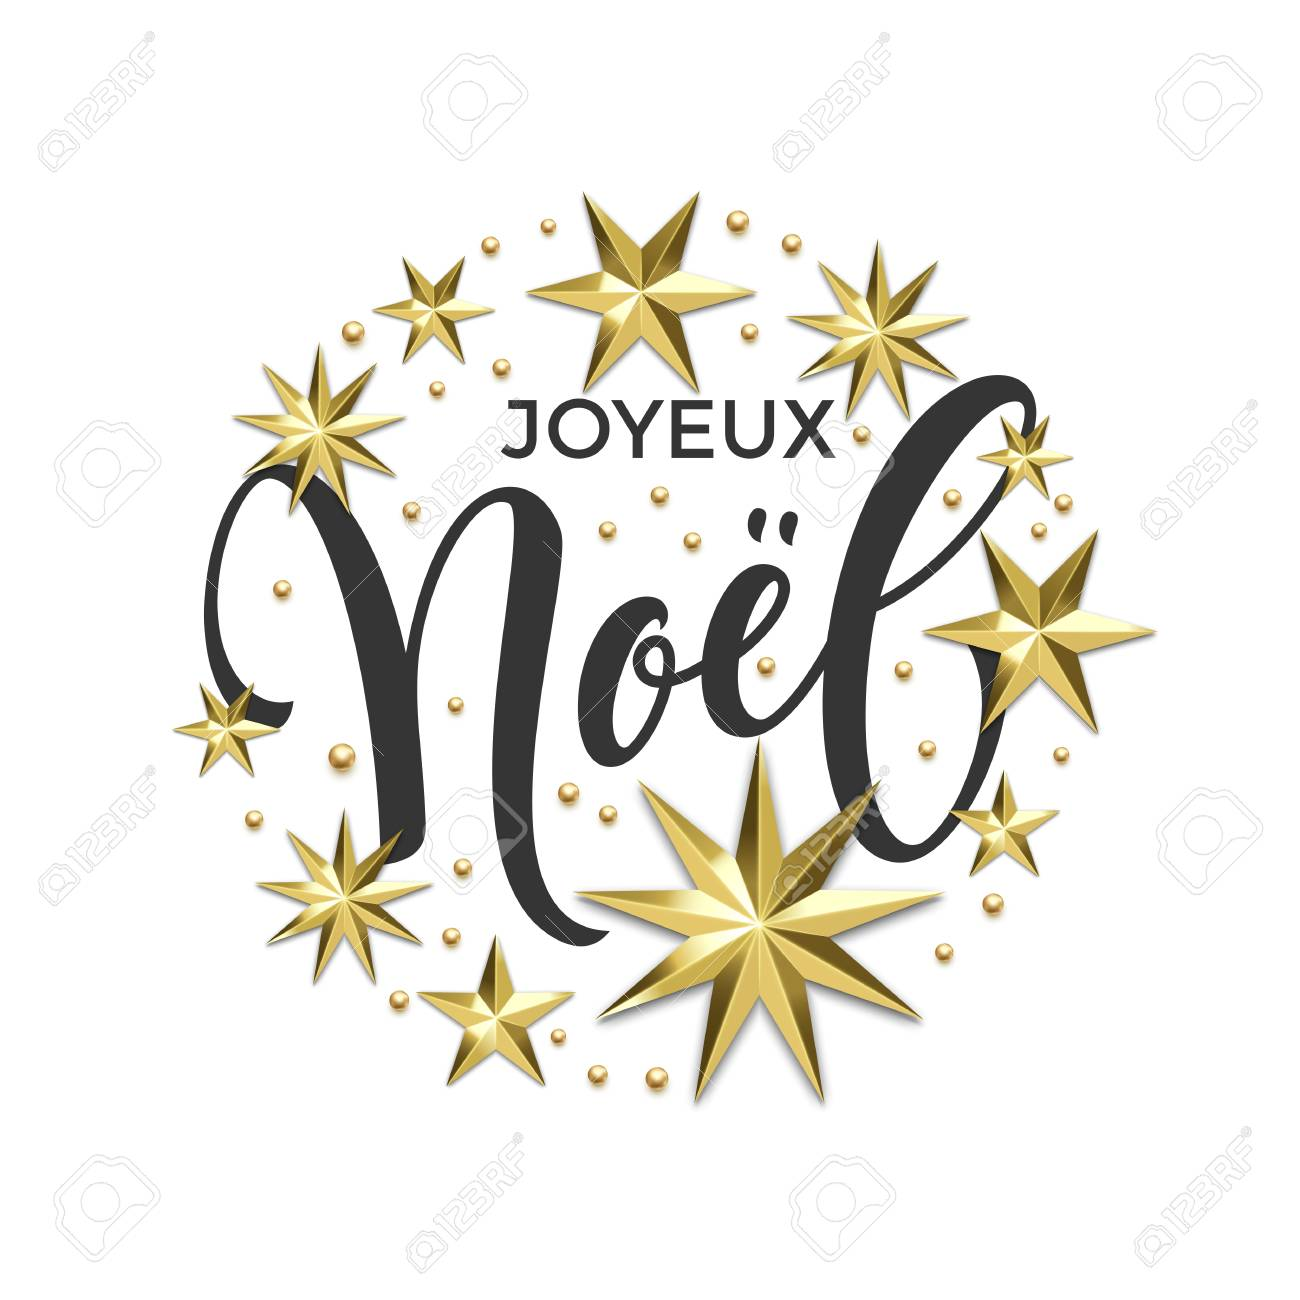 Joyeux noel french merry christmas golden decoration calligraphy joyeux noel french merry christmas golden decoration calligraphy font for invitation or greeting card white stopboris Gallery